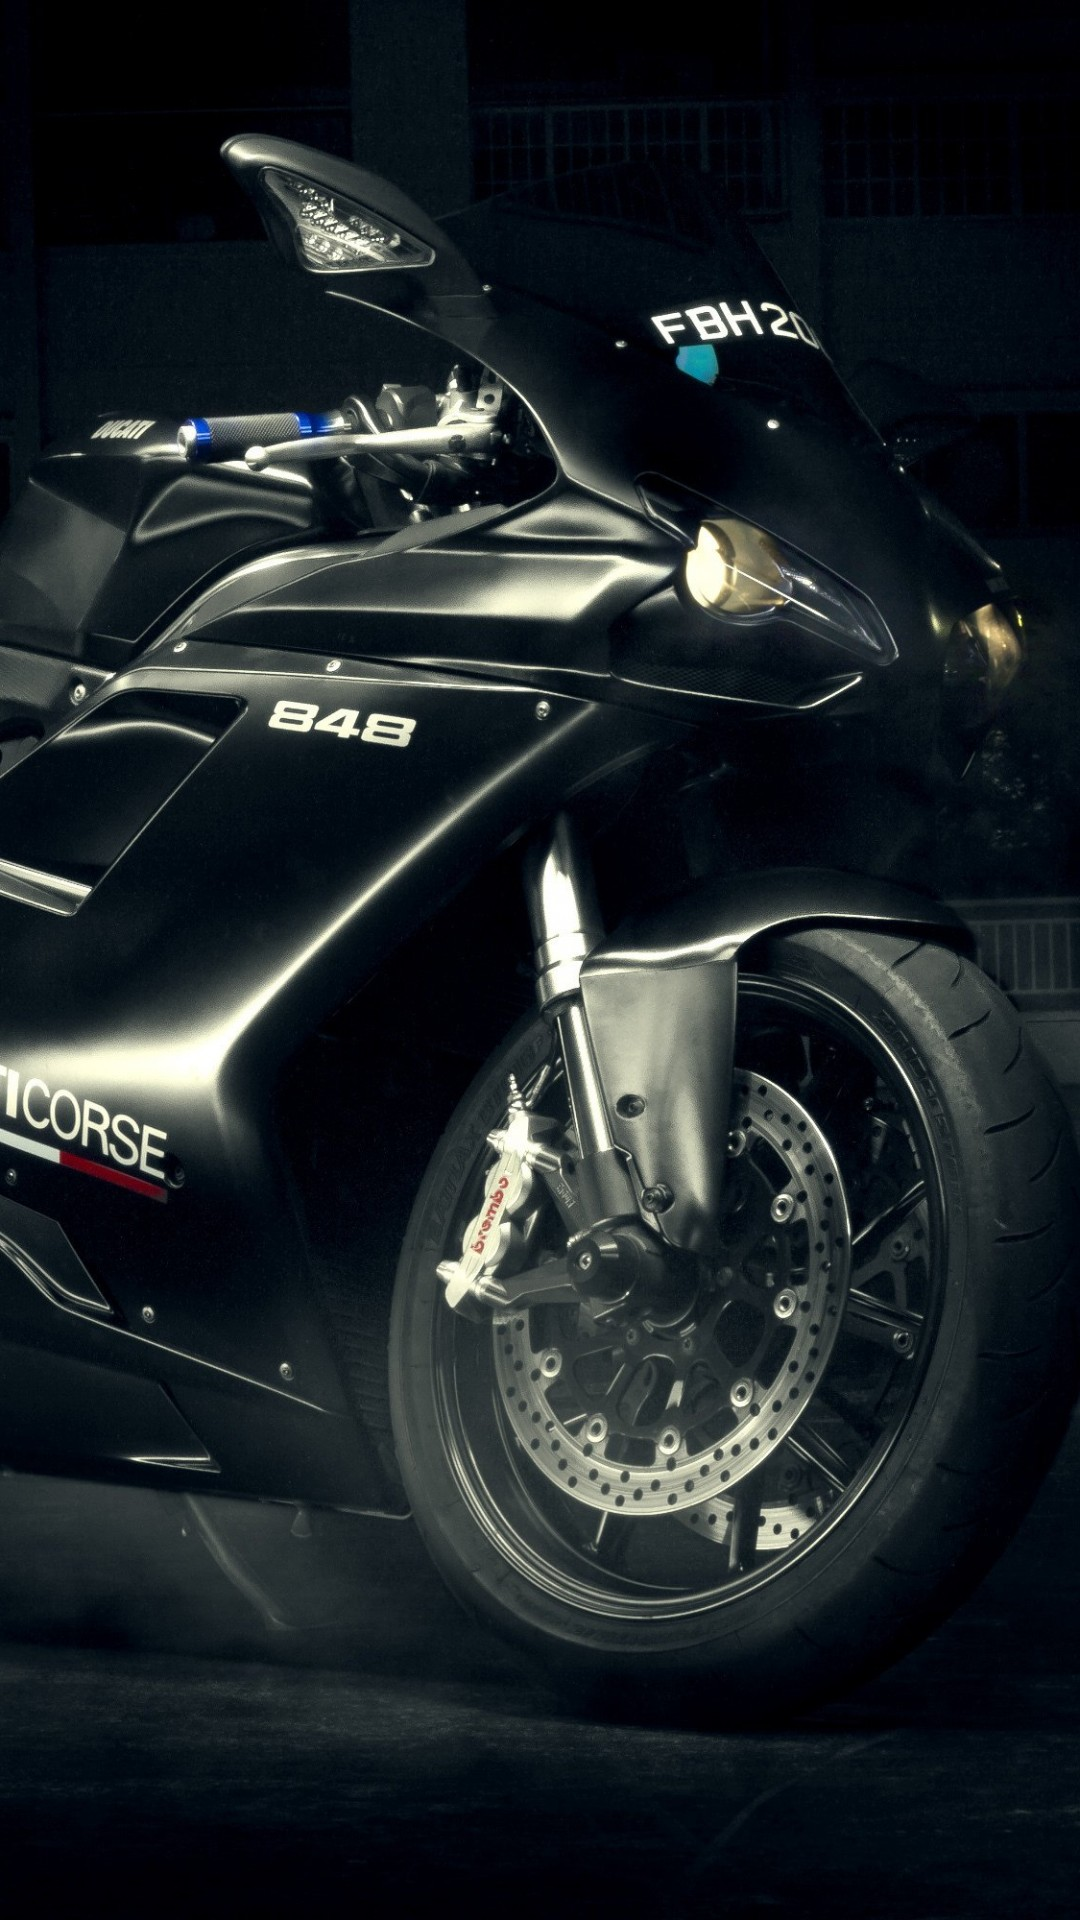 Ducati 848 Wallpaper for Motorola Moto X